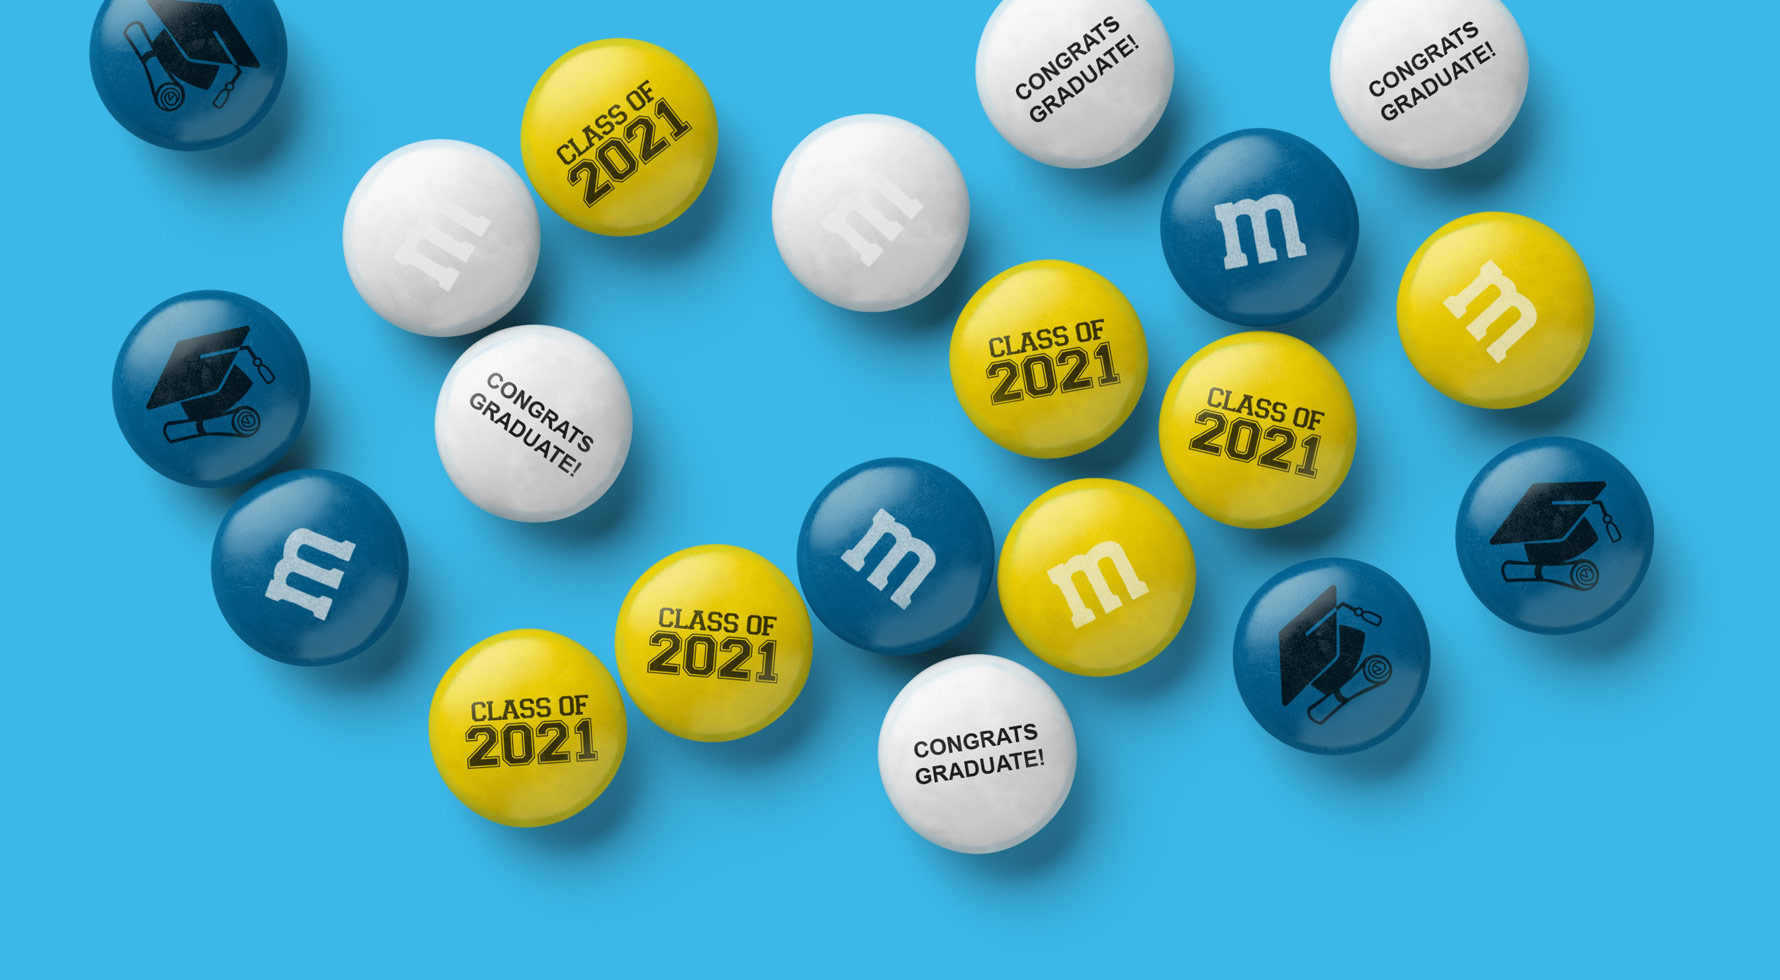 A spill of Class of 2021 themed personalized M&M'S